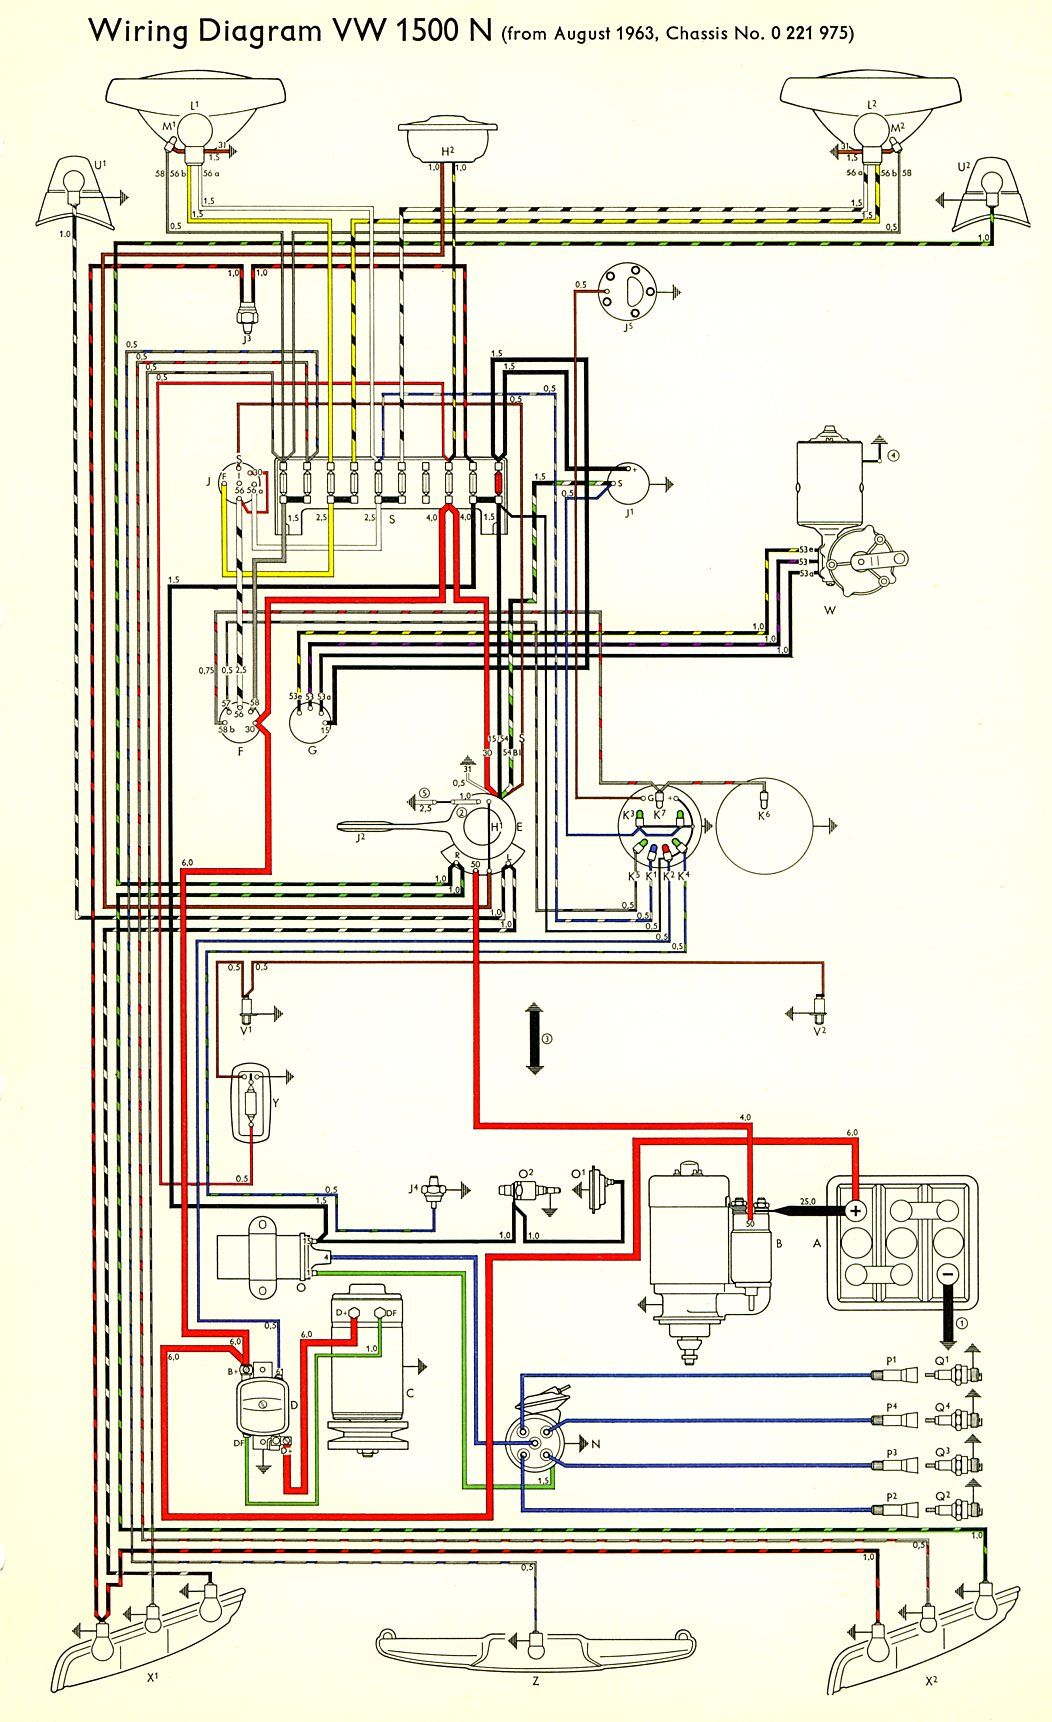 1964 wiring diagram wiring diagram for impala the wiring diagram com type wiring diagrams 1964